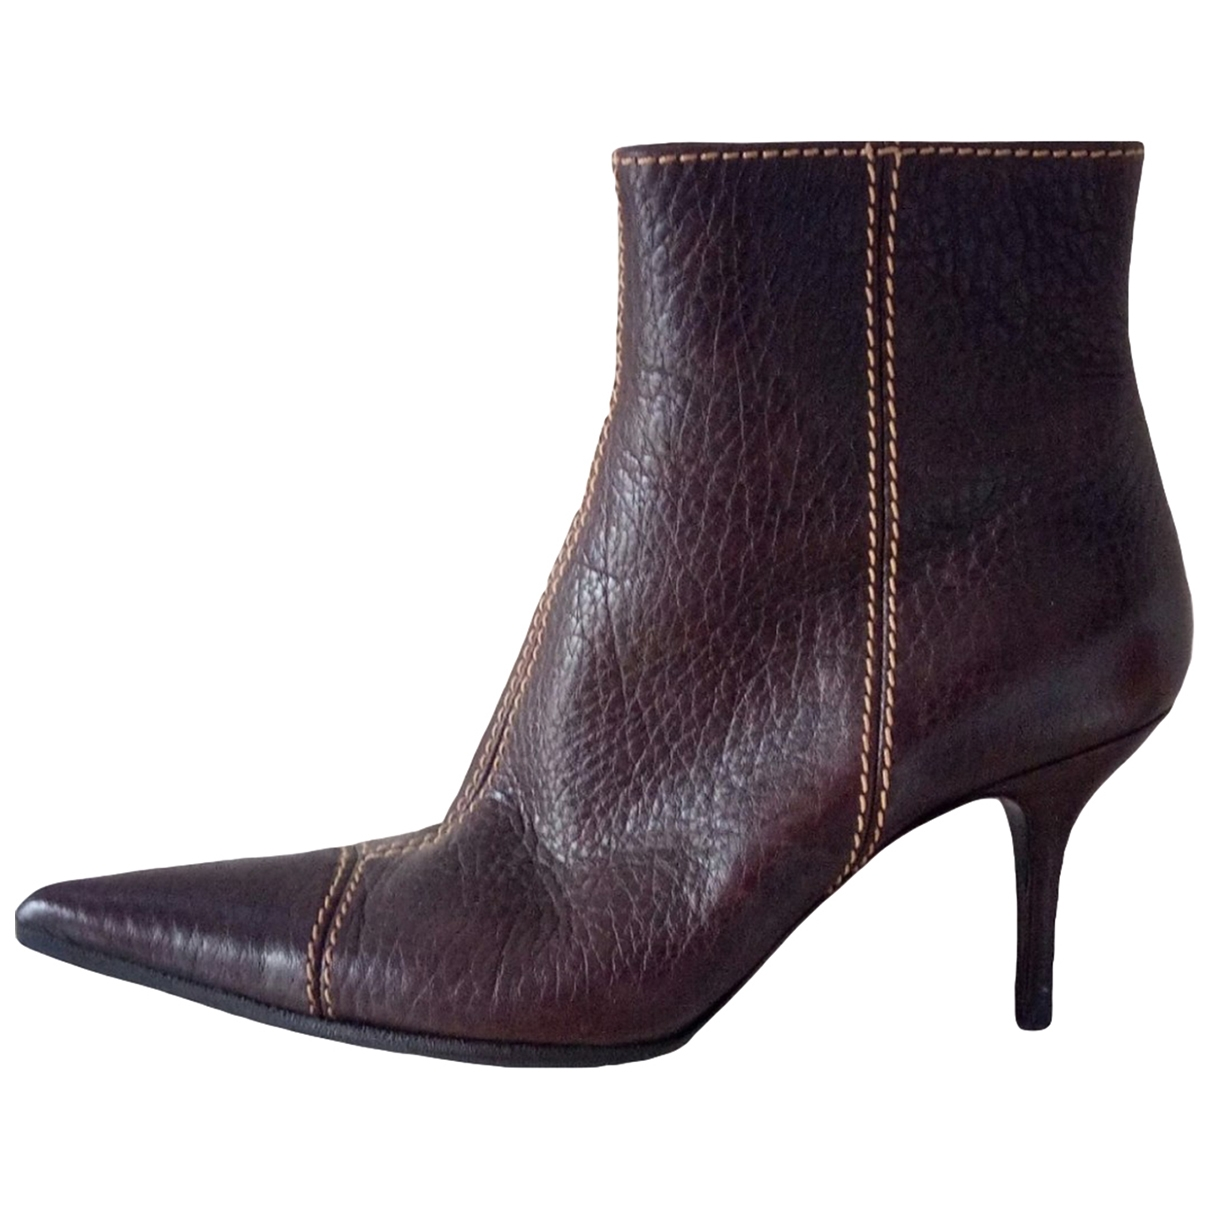 Dolce & Gabbana \N Brown Leather Ankle boots for Women 38 EU